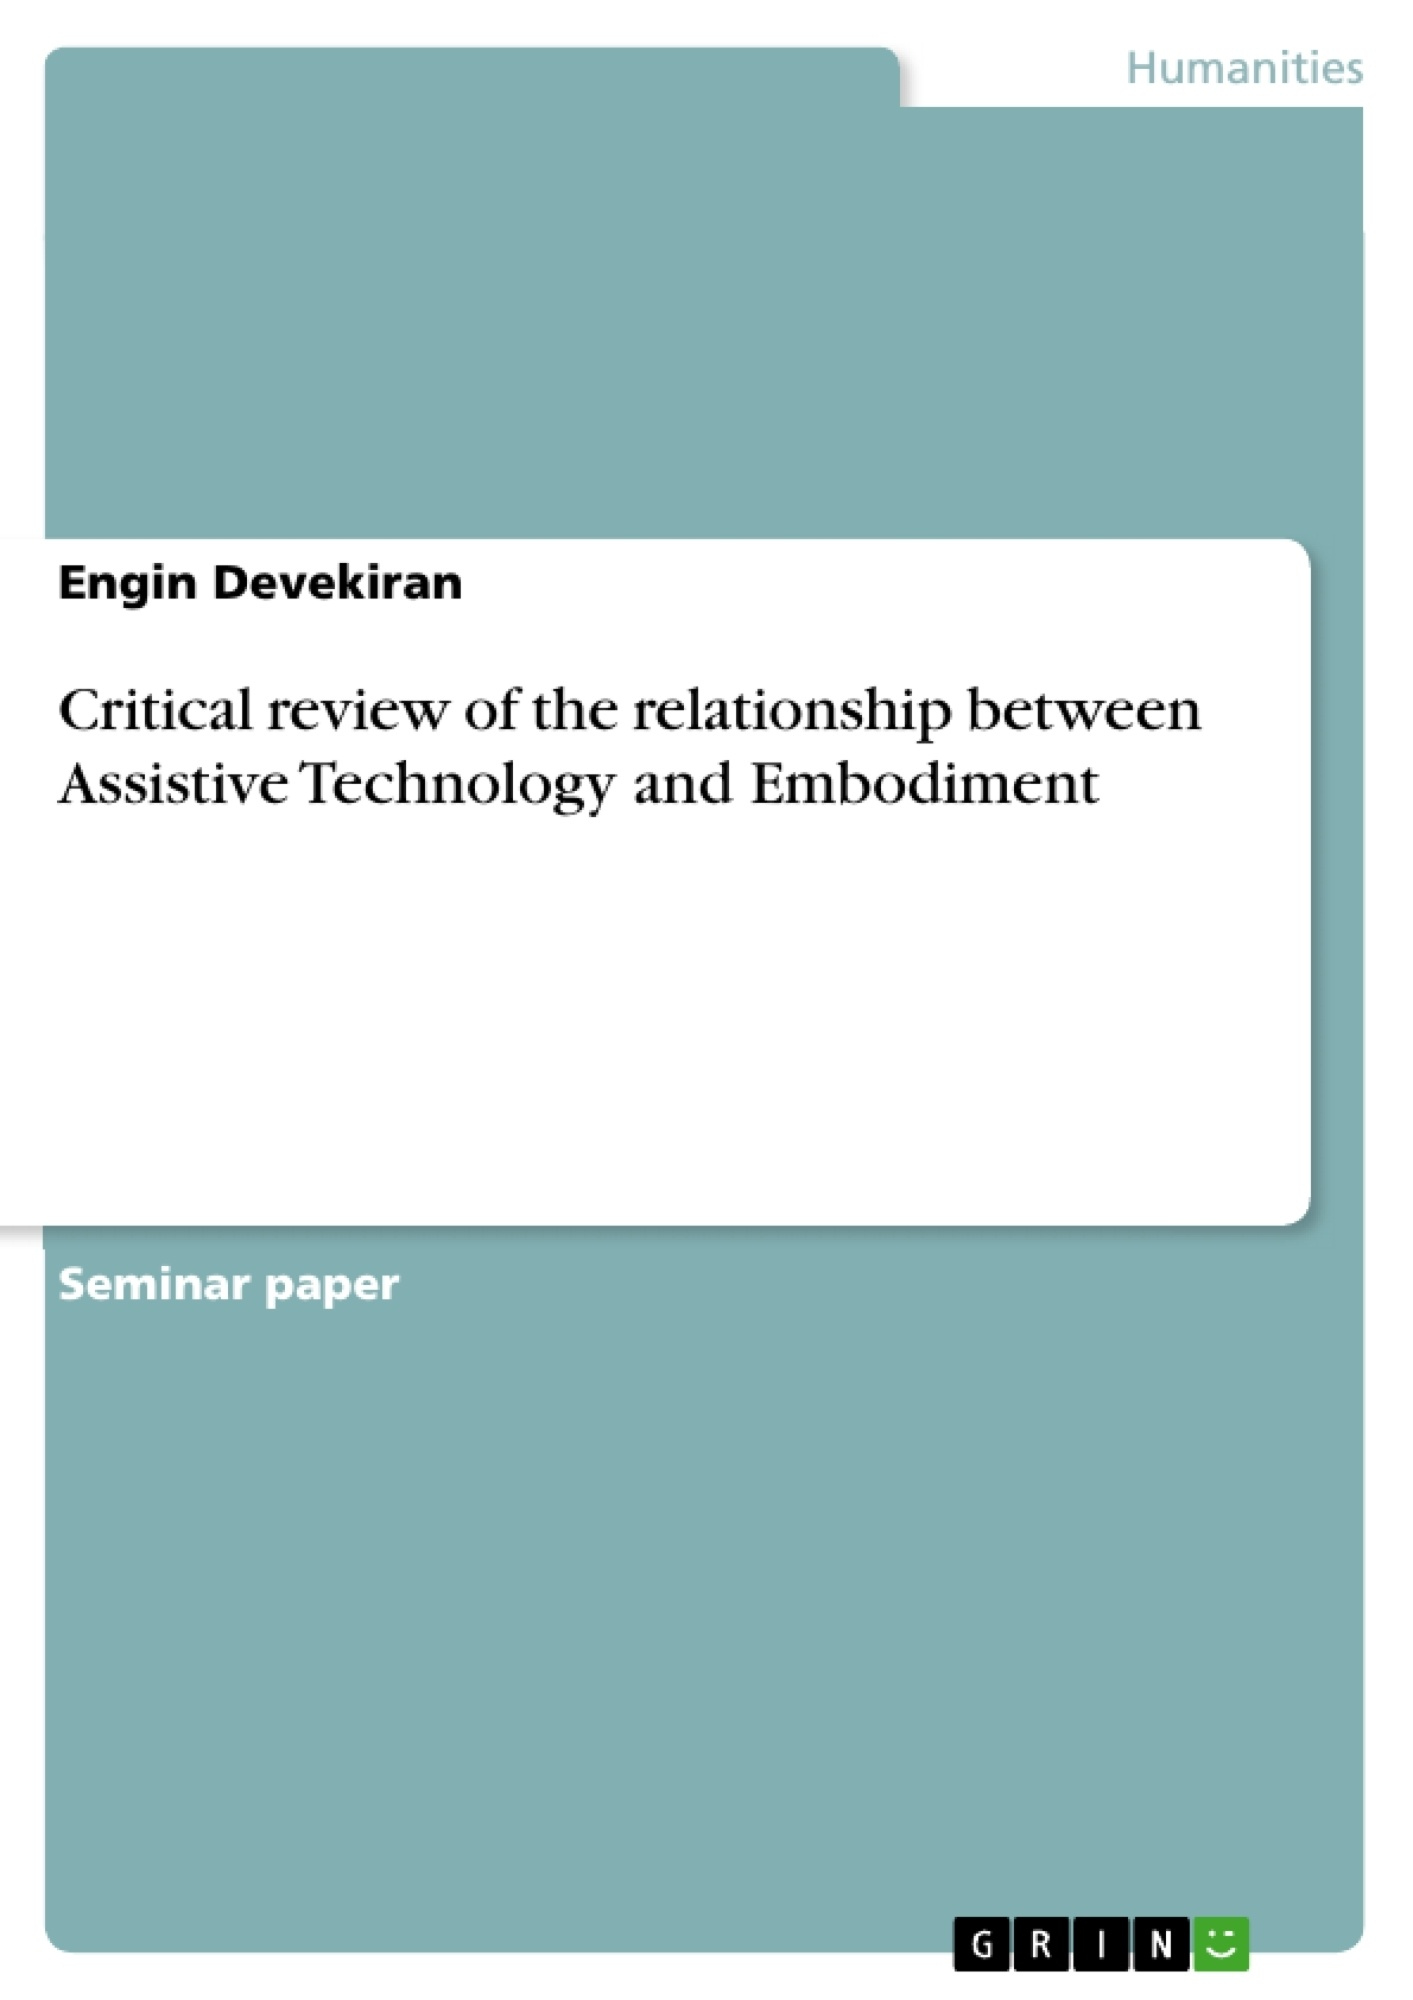 Title: Critical review of the relationship between Assistive Technology and Embodiment